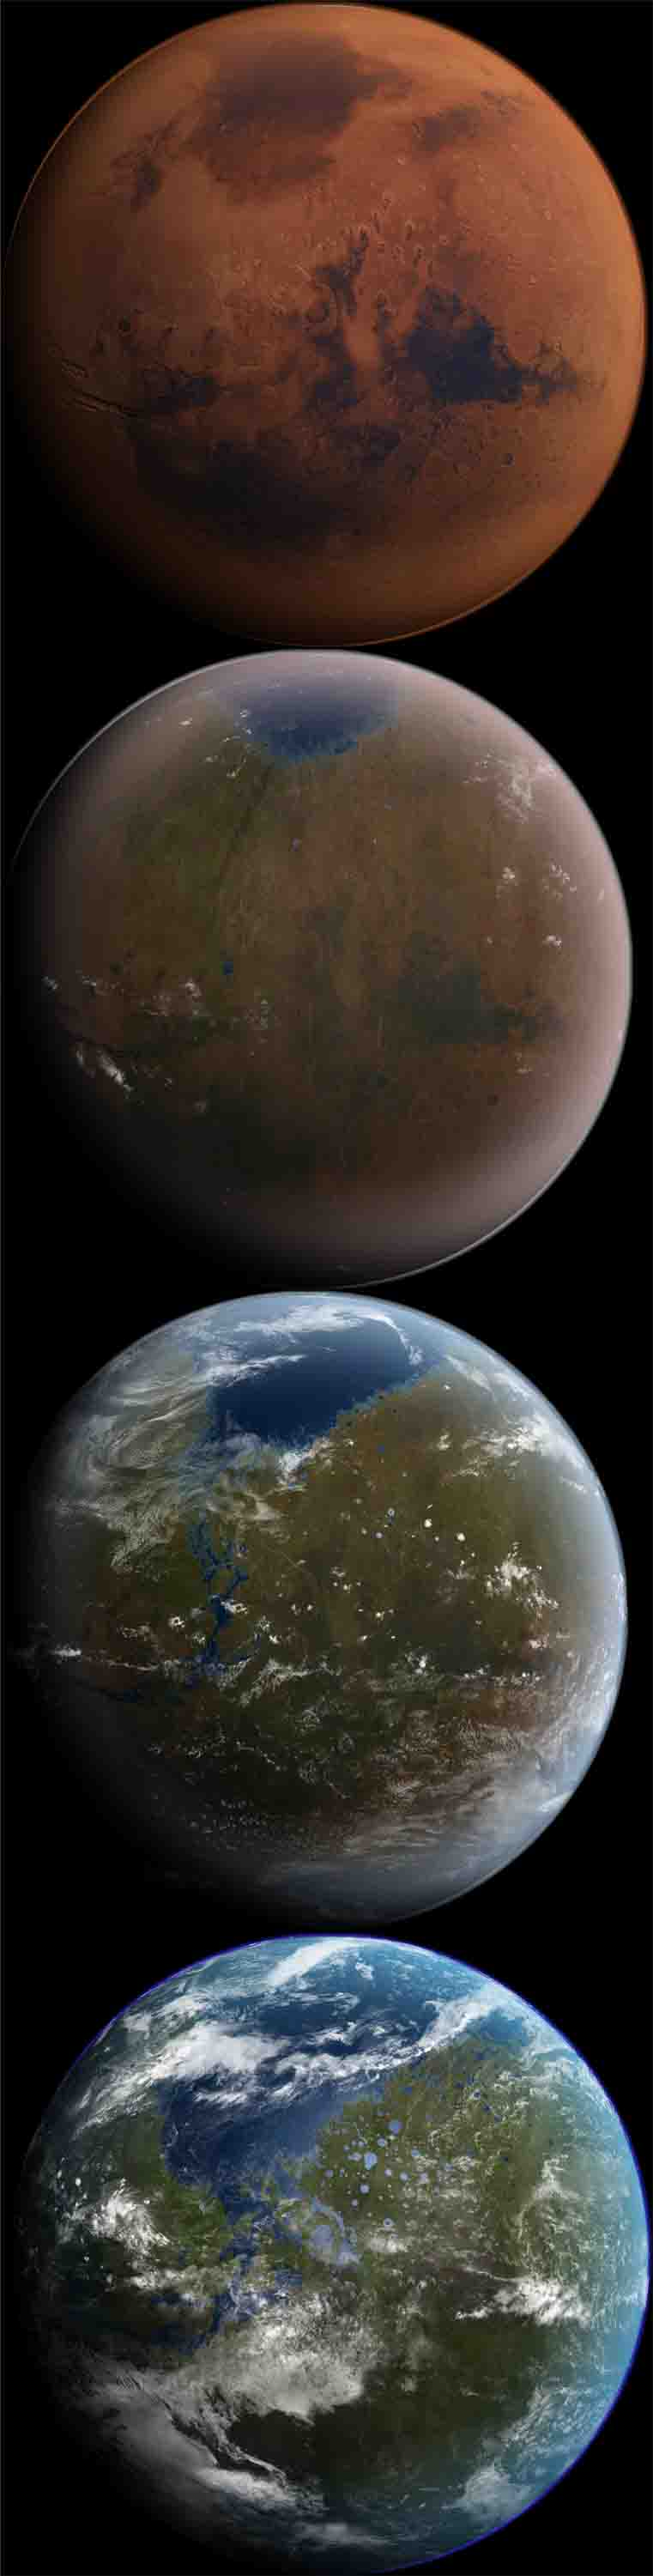 Mars being Terra-formed, artificially creating an atomosphere... Could this have ever happened to the Earth?